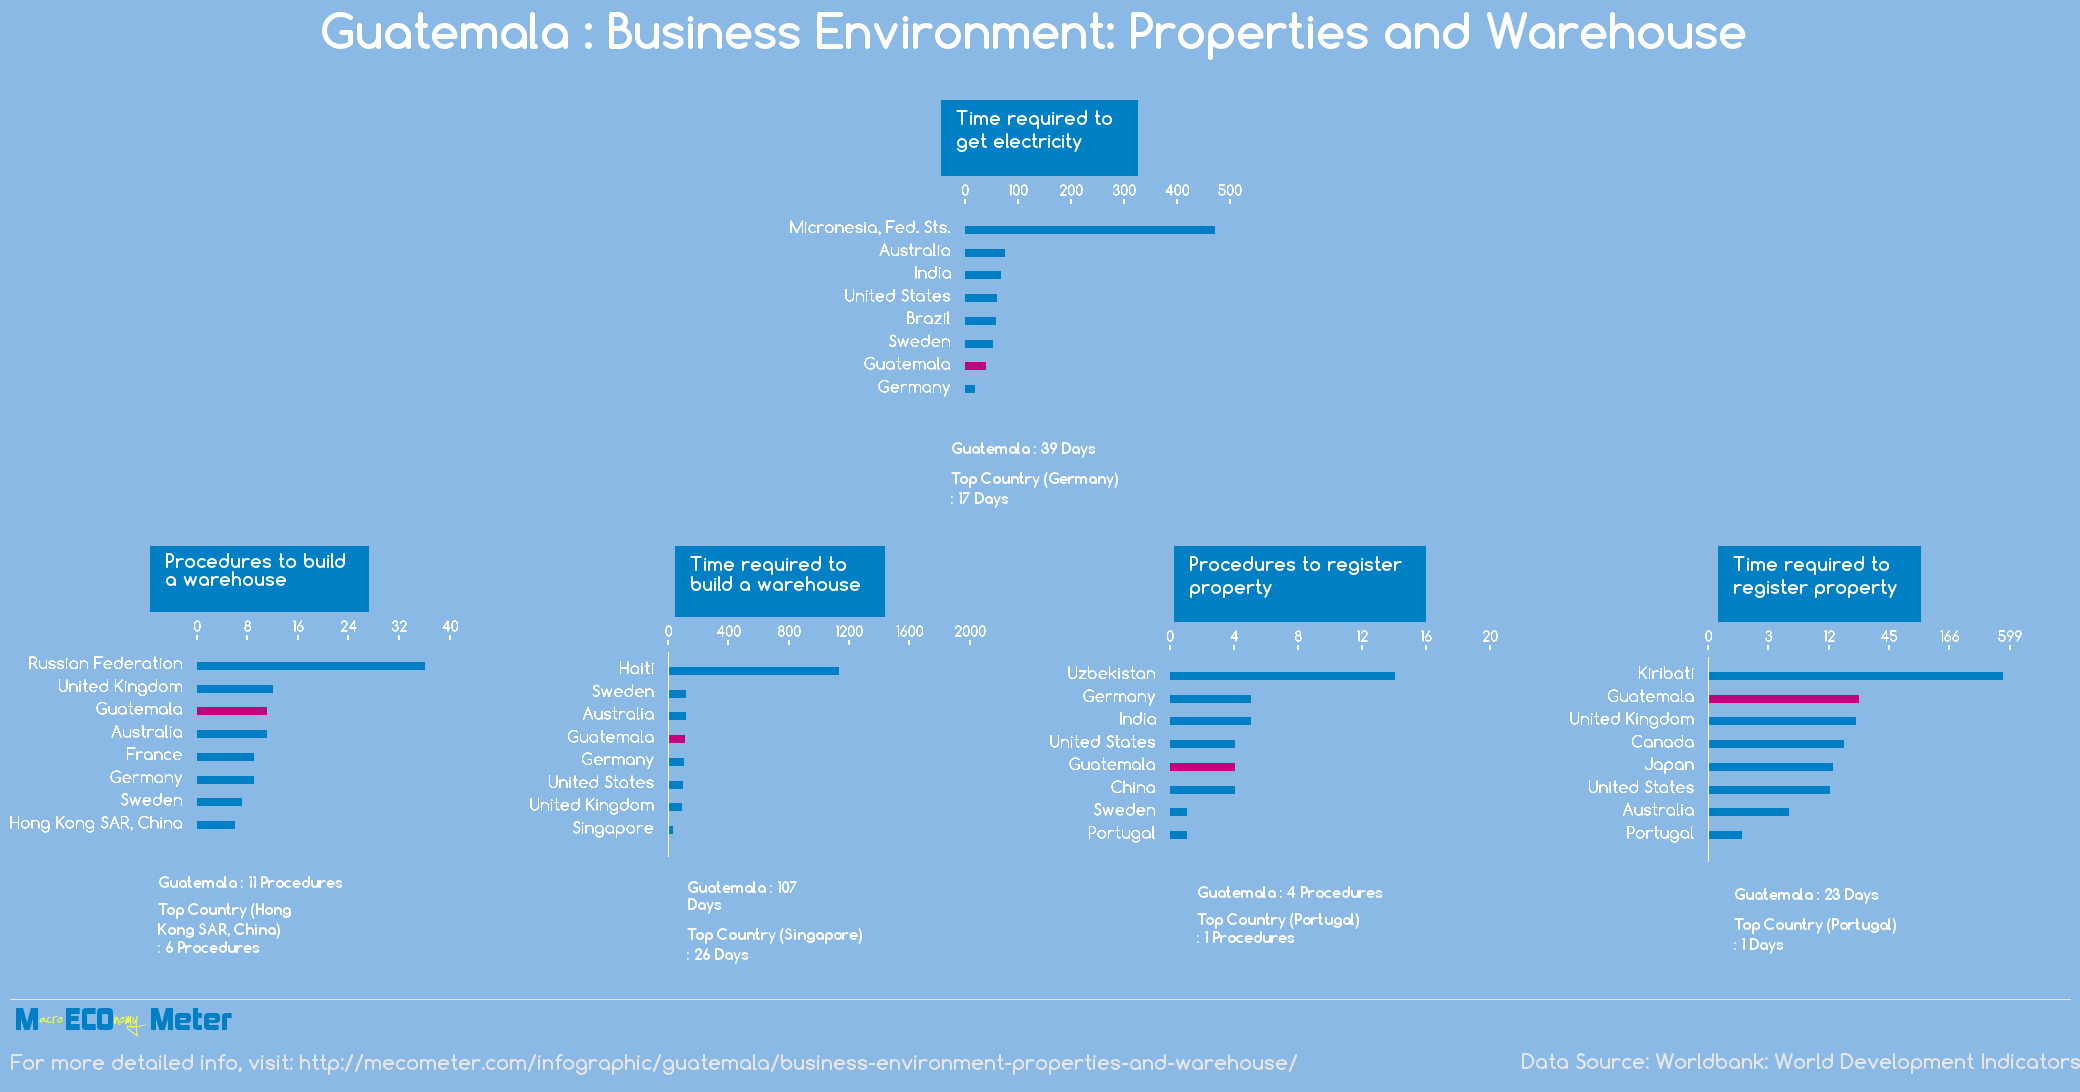 Guatemala : Business Environment: Properties and Warehouse